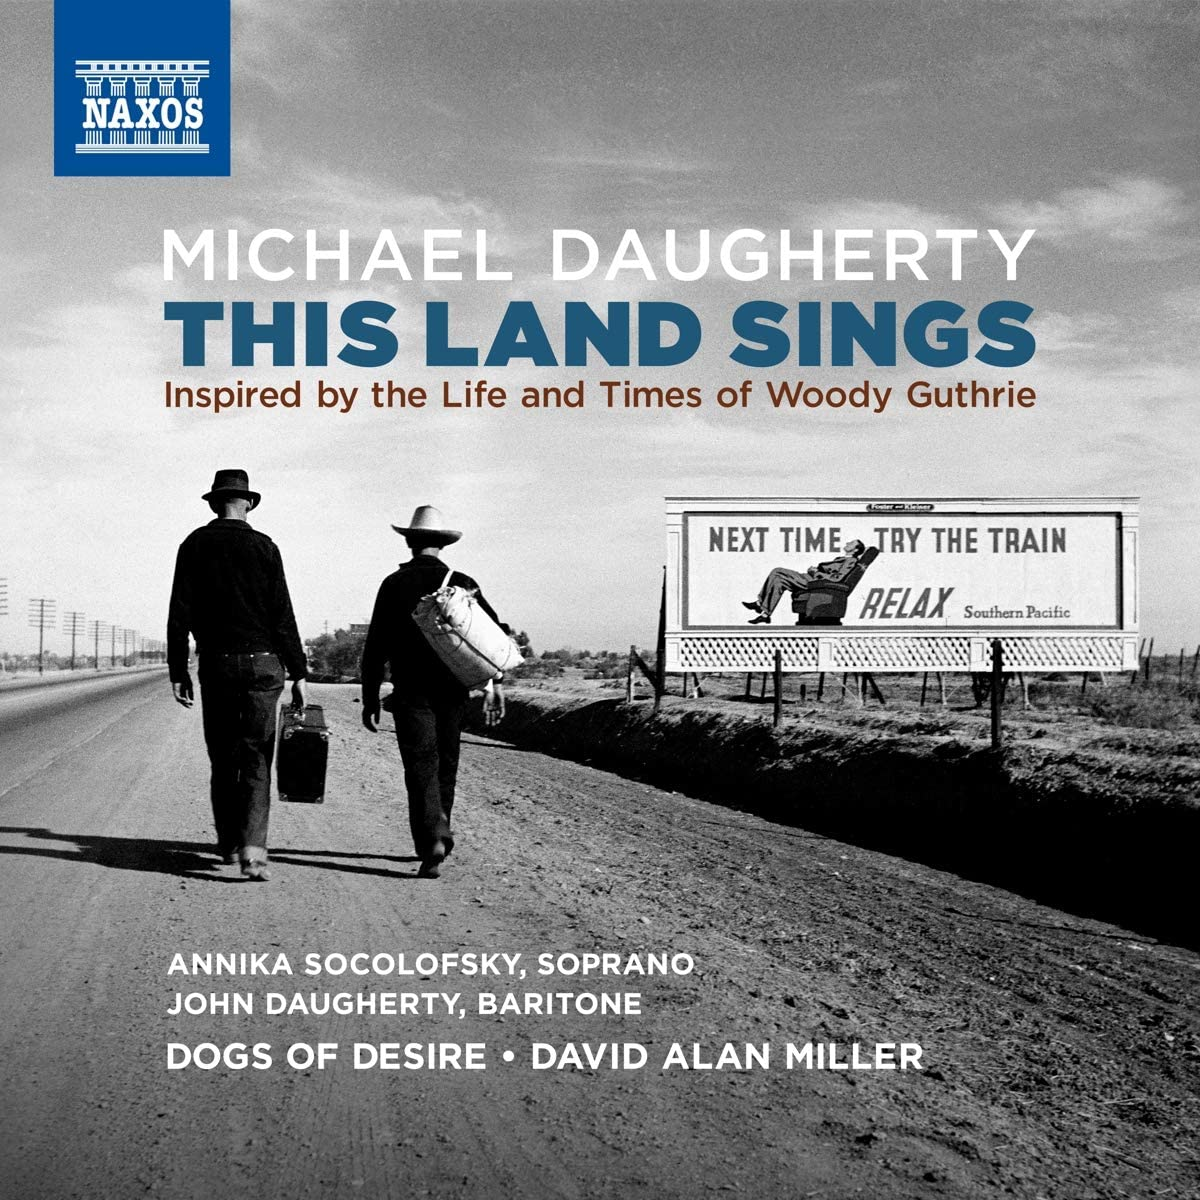 Review of DAUGHERTY This Land Sings (Inspired by the Life and Times of Woody Guthrie)